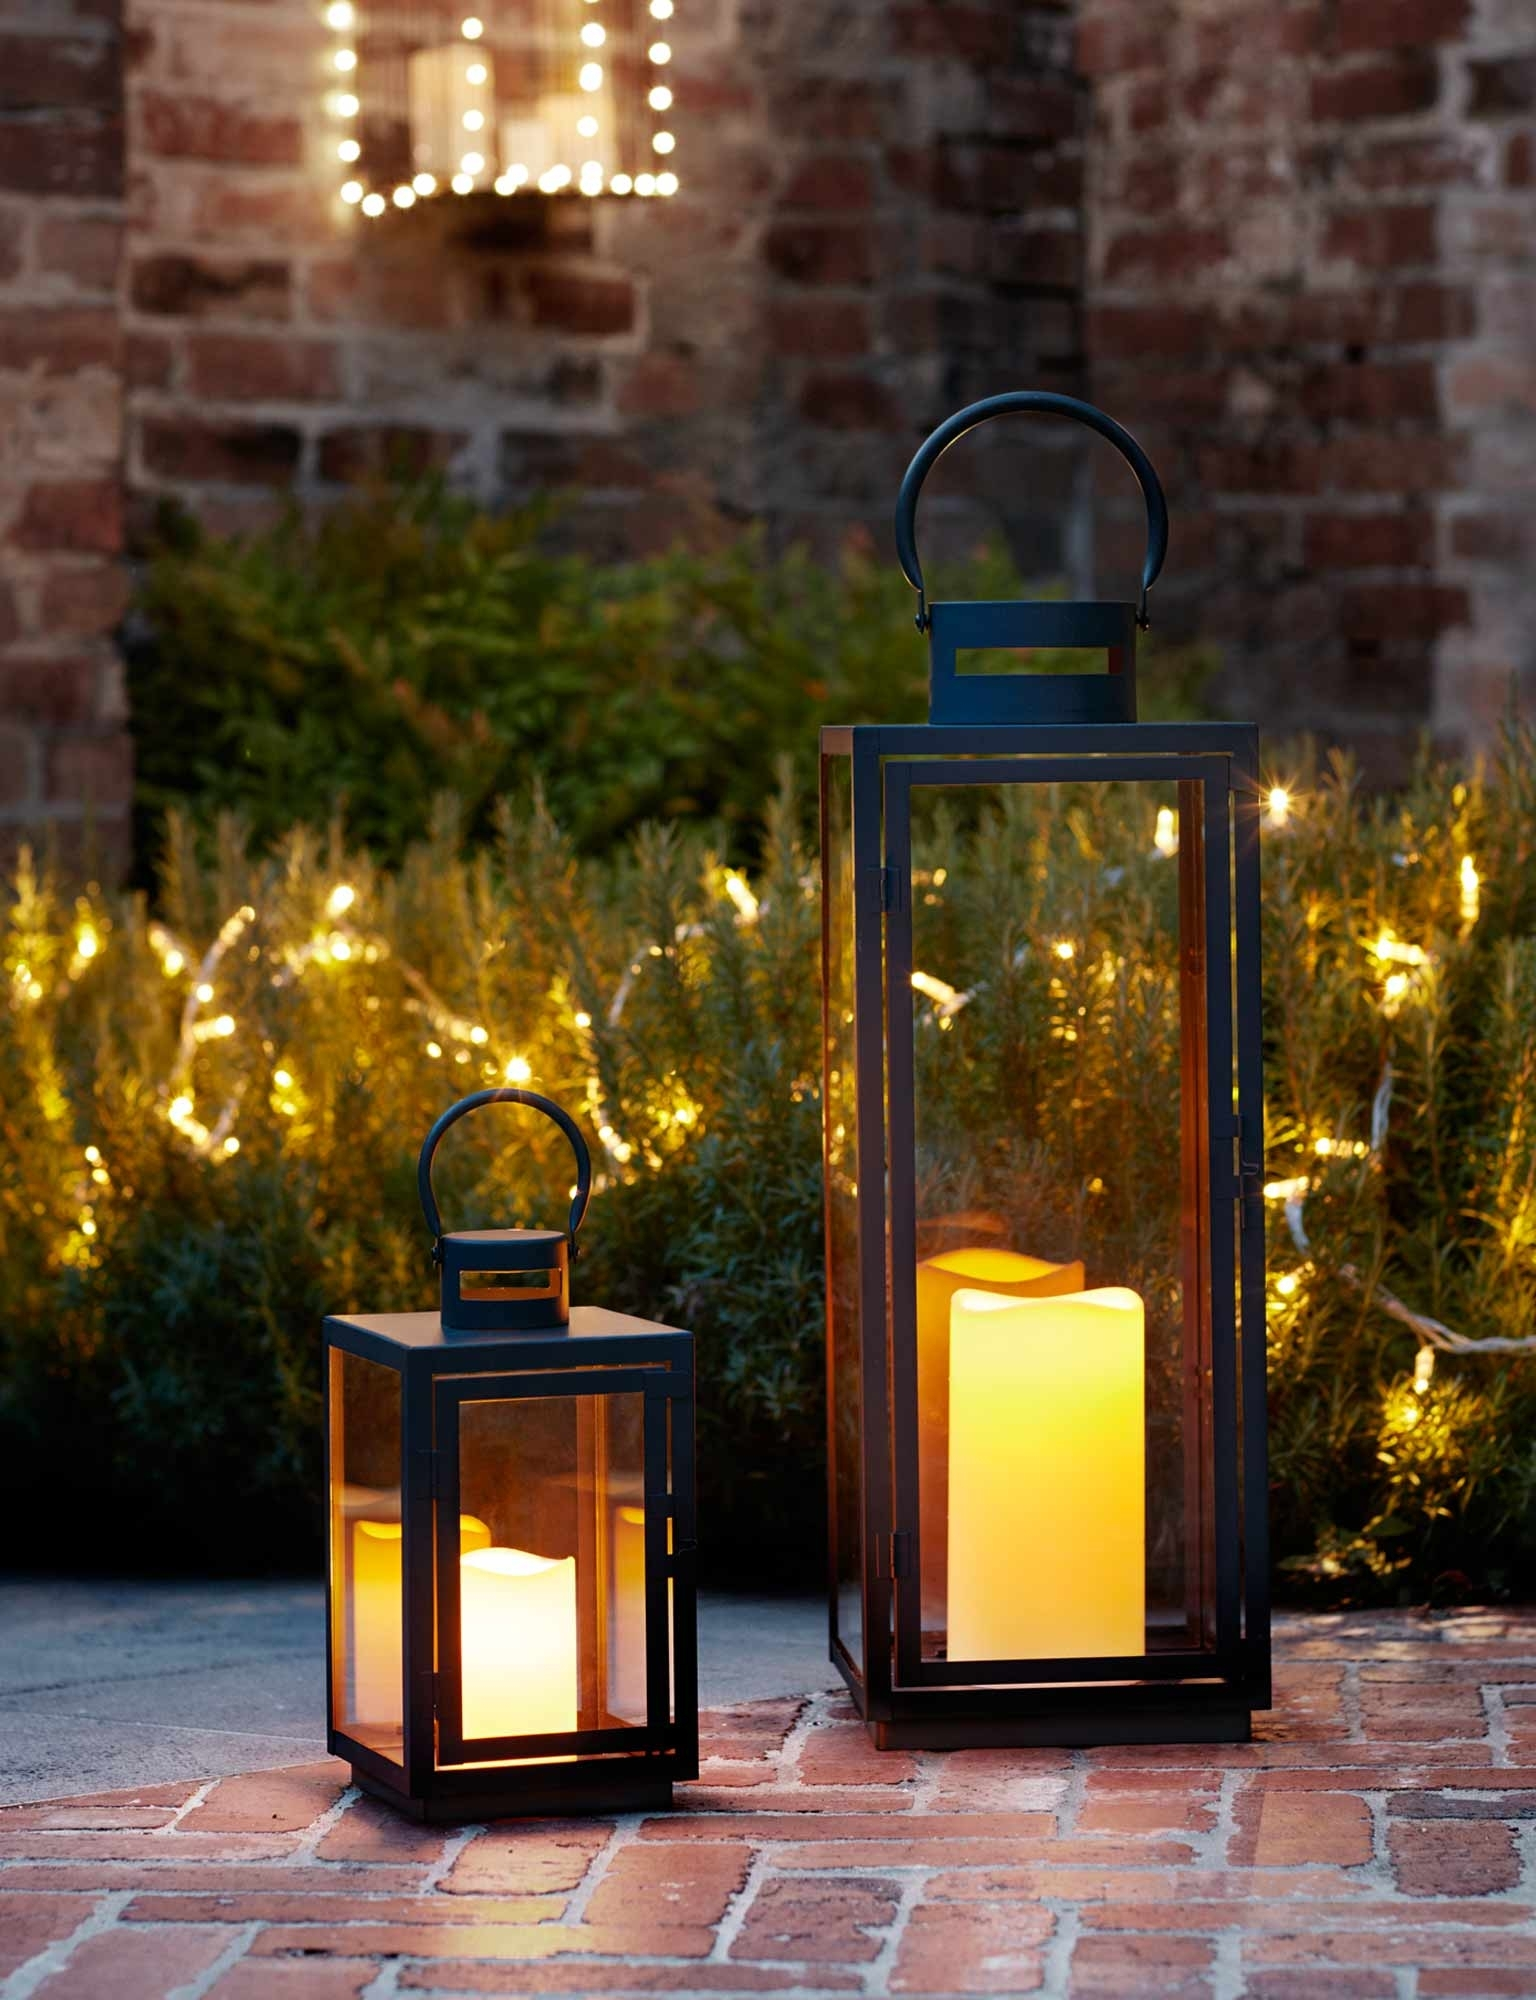 Garden Lighting Ideas | Inspiration | Lights4Fun.co.uk pertaining to Outdoor Tea Light Lanterns (Image 5 of 20)